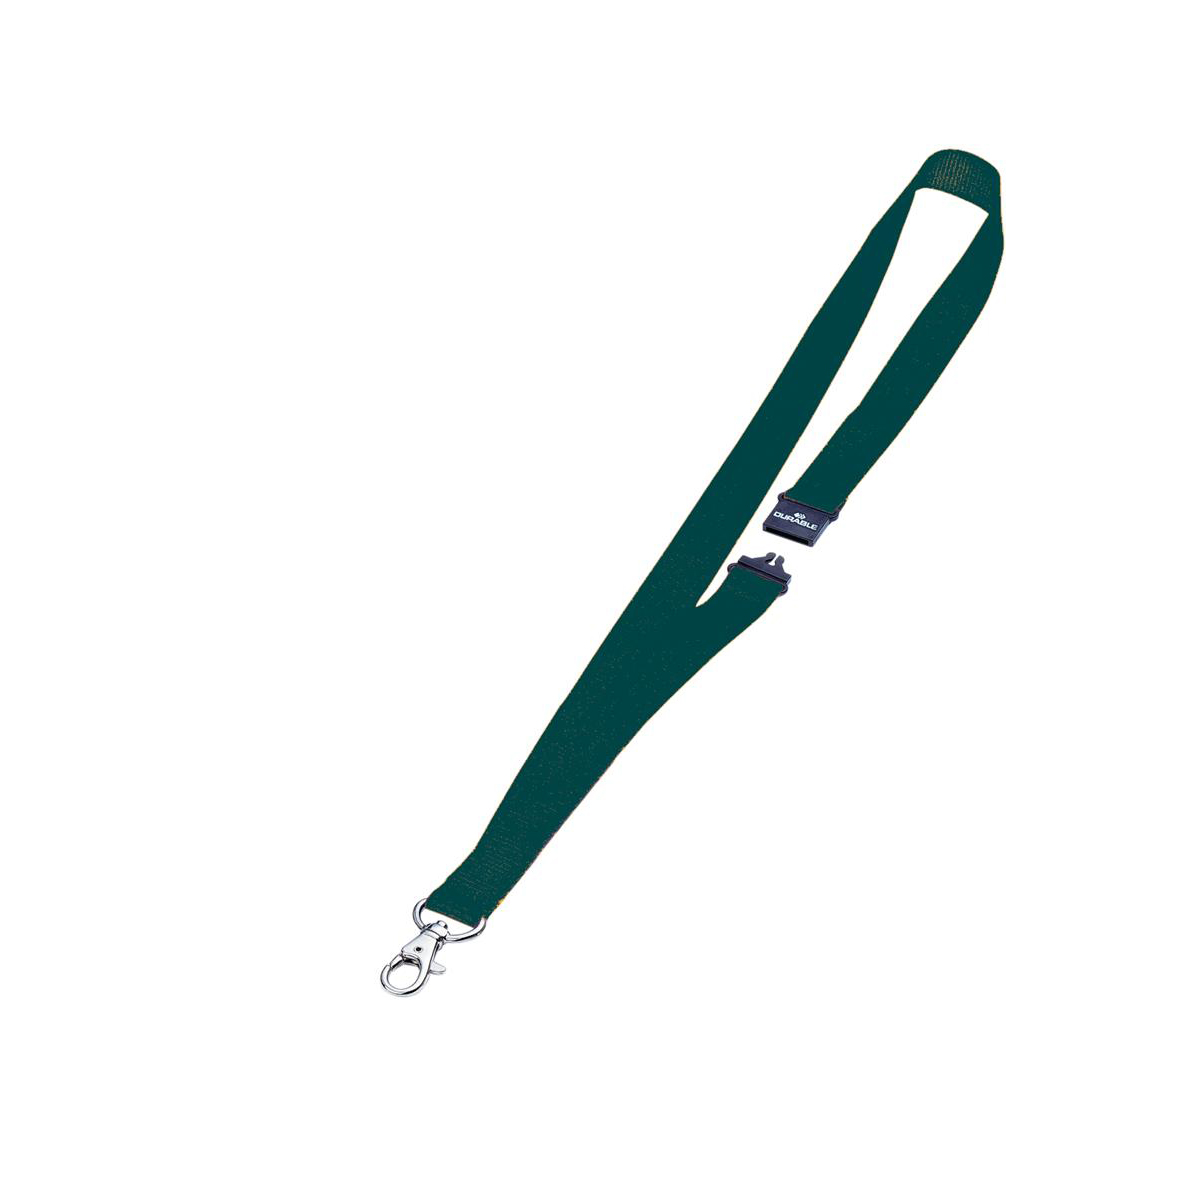 Durable Textile Name Badge Lanyards 20x440mm with Safety Closure Green Ref 813705 [Pack 10]